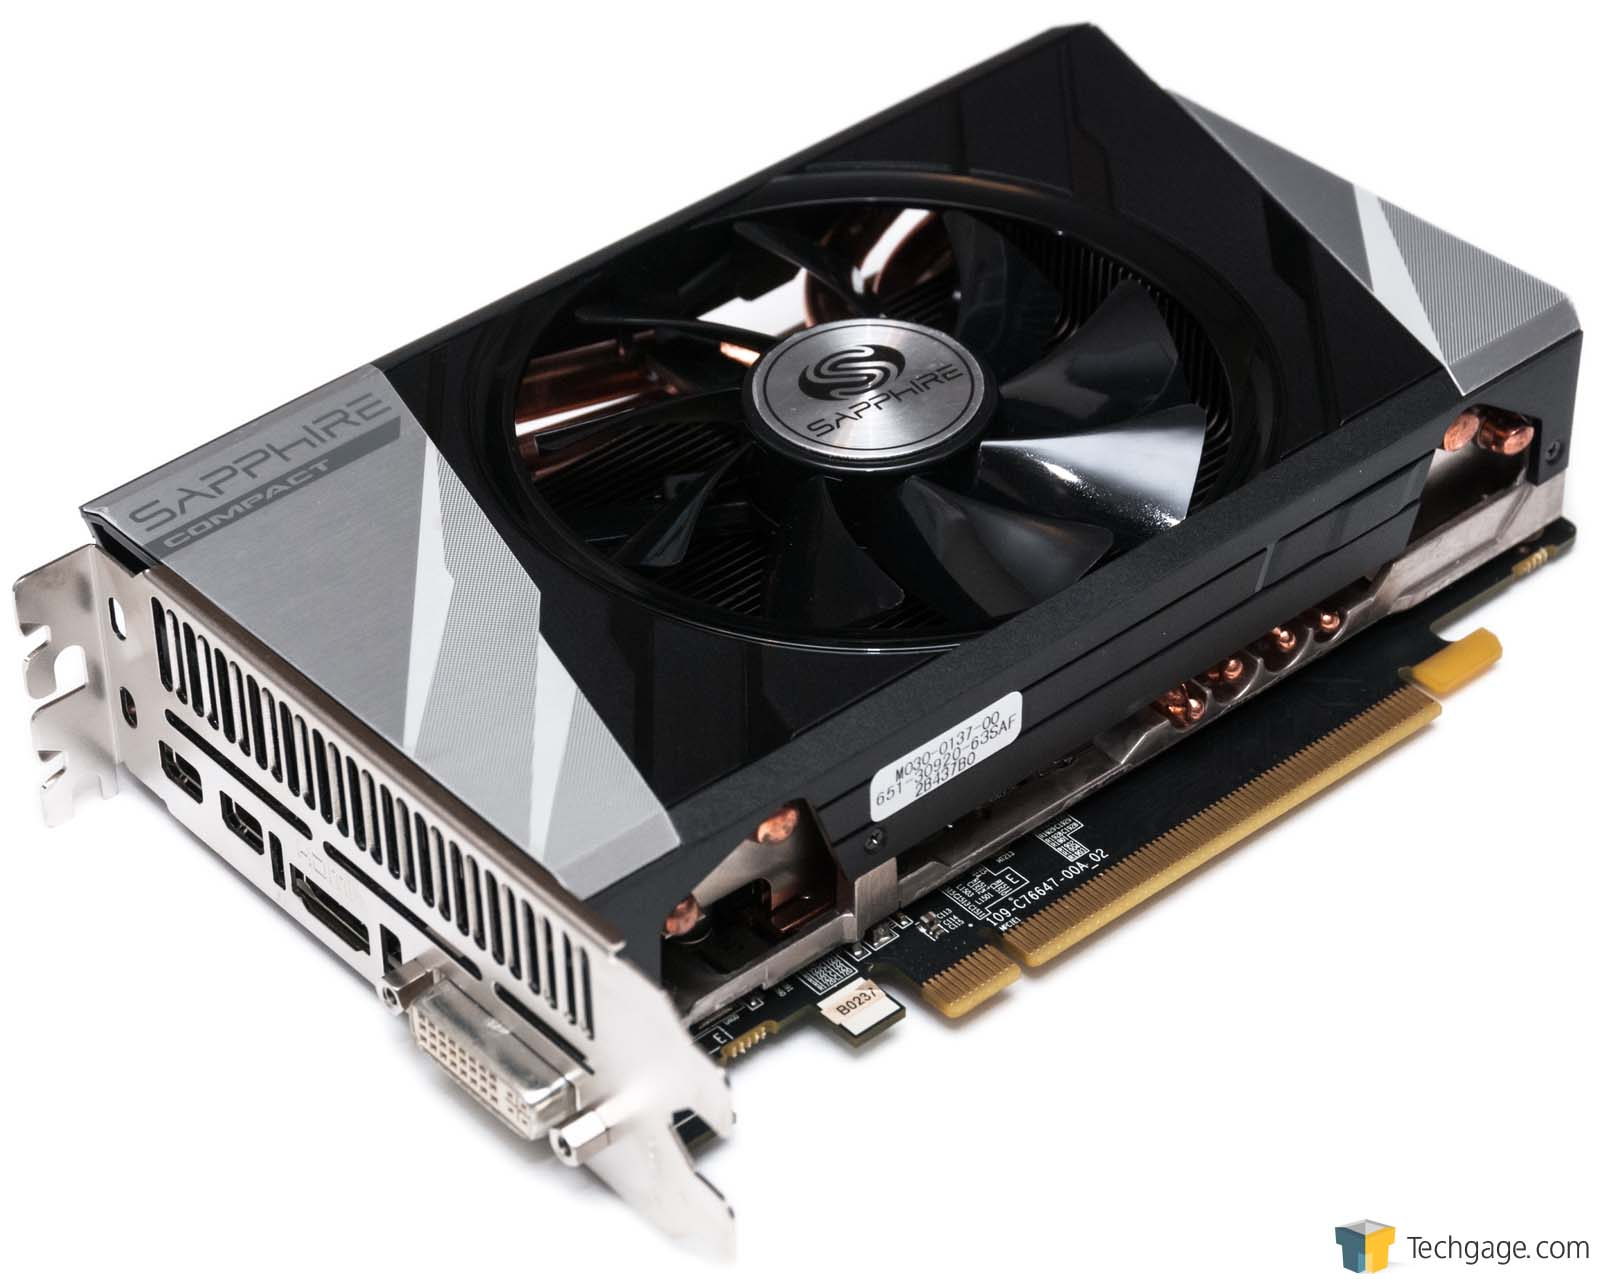 Sapphire Radeon R9 285 ITX Compact Graphics Card Review – Techgage